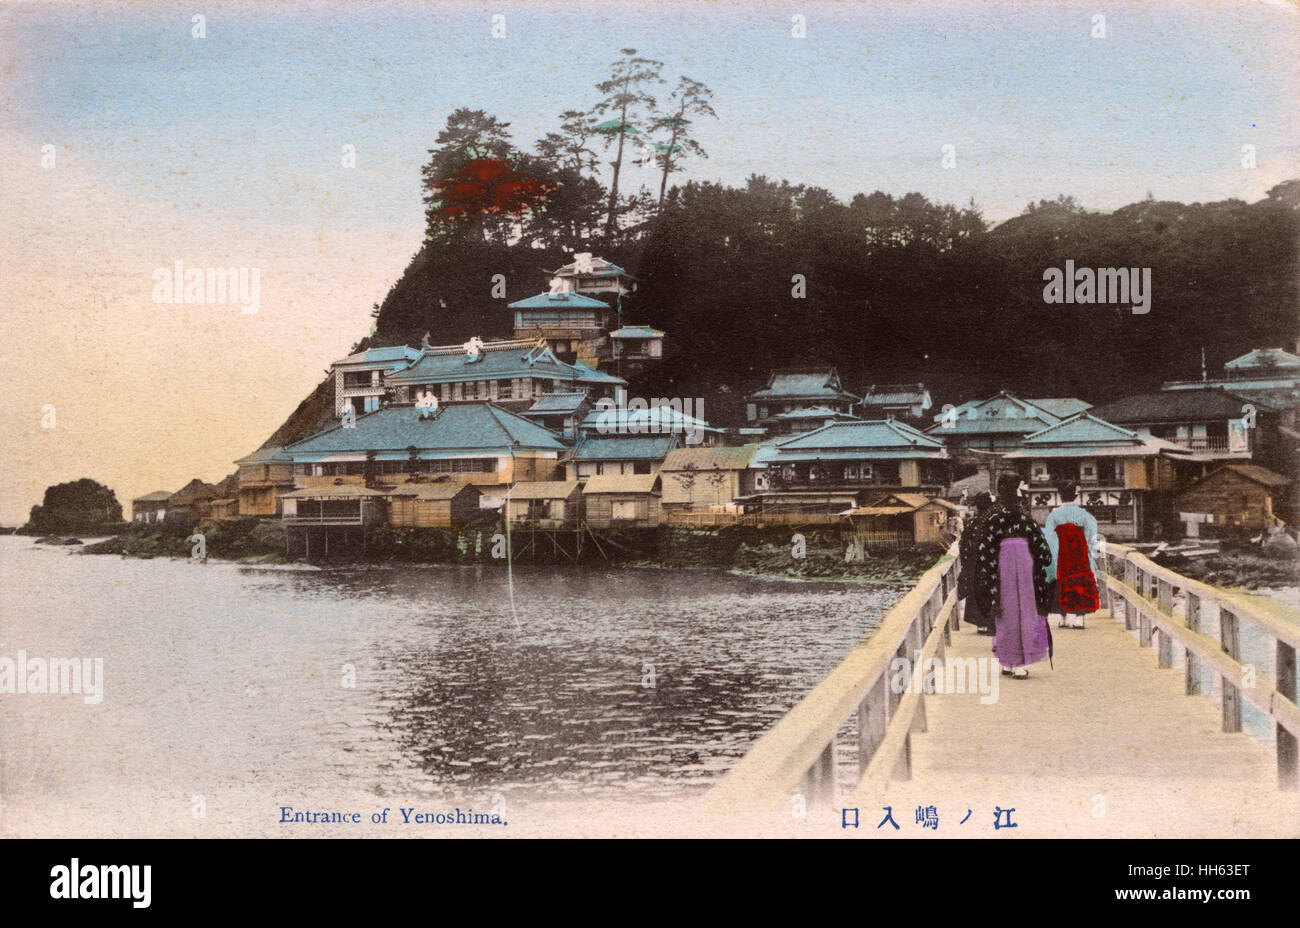 Enoshima, a small offshore island, about 4 km in circumference, at the mouth of the Katase River, which flows into - Stock Image